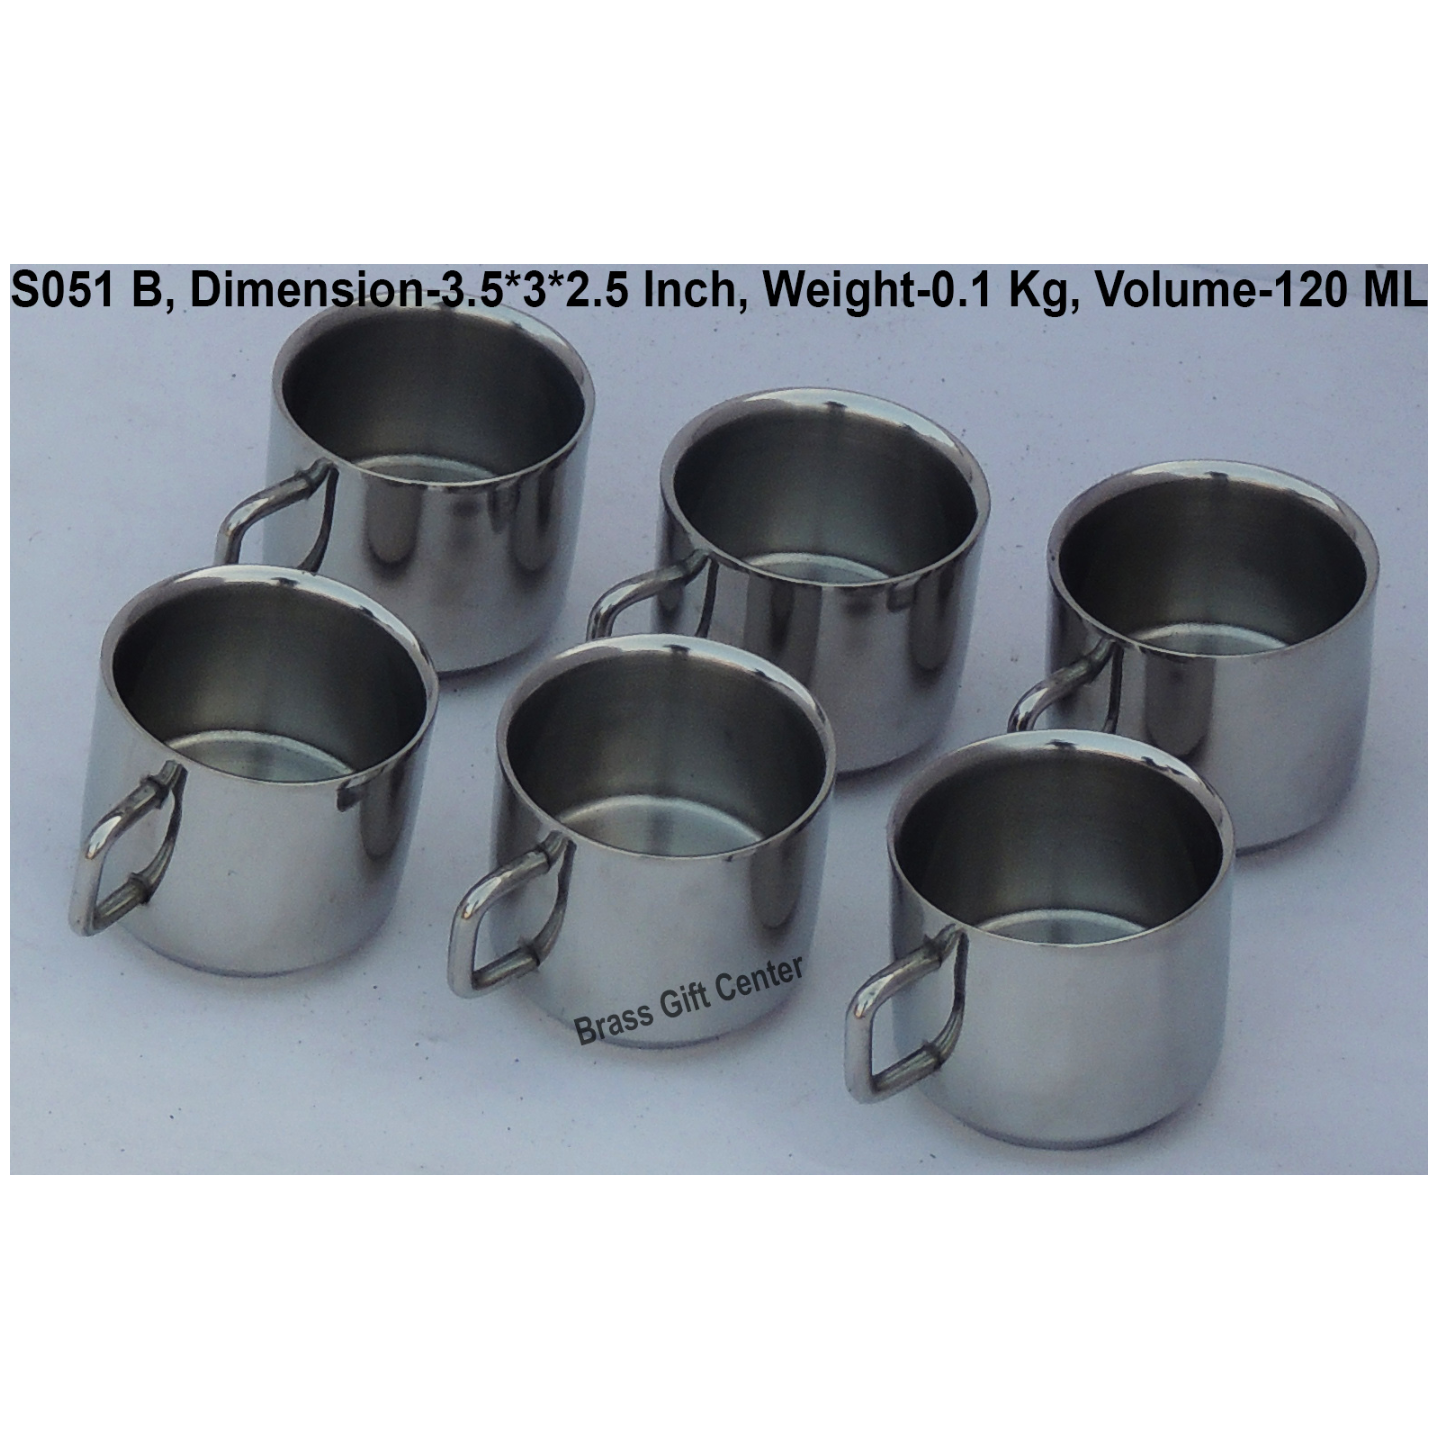 Steel Cup Capacity 120 ML, Set of 6 Pcs, Height 2.5 Inch S051 B